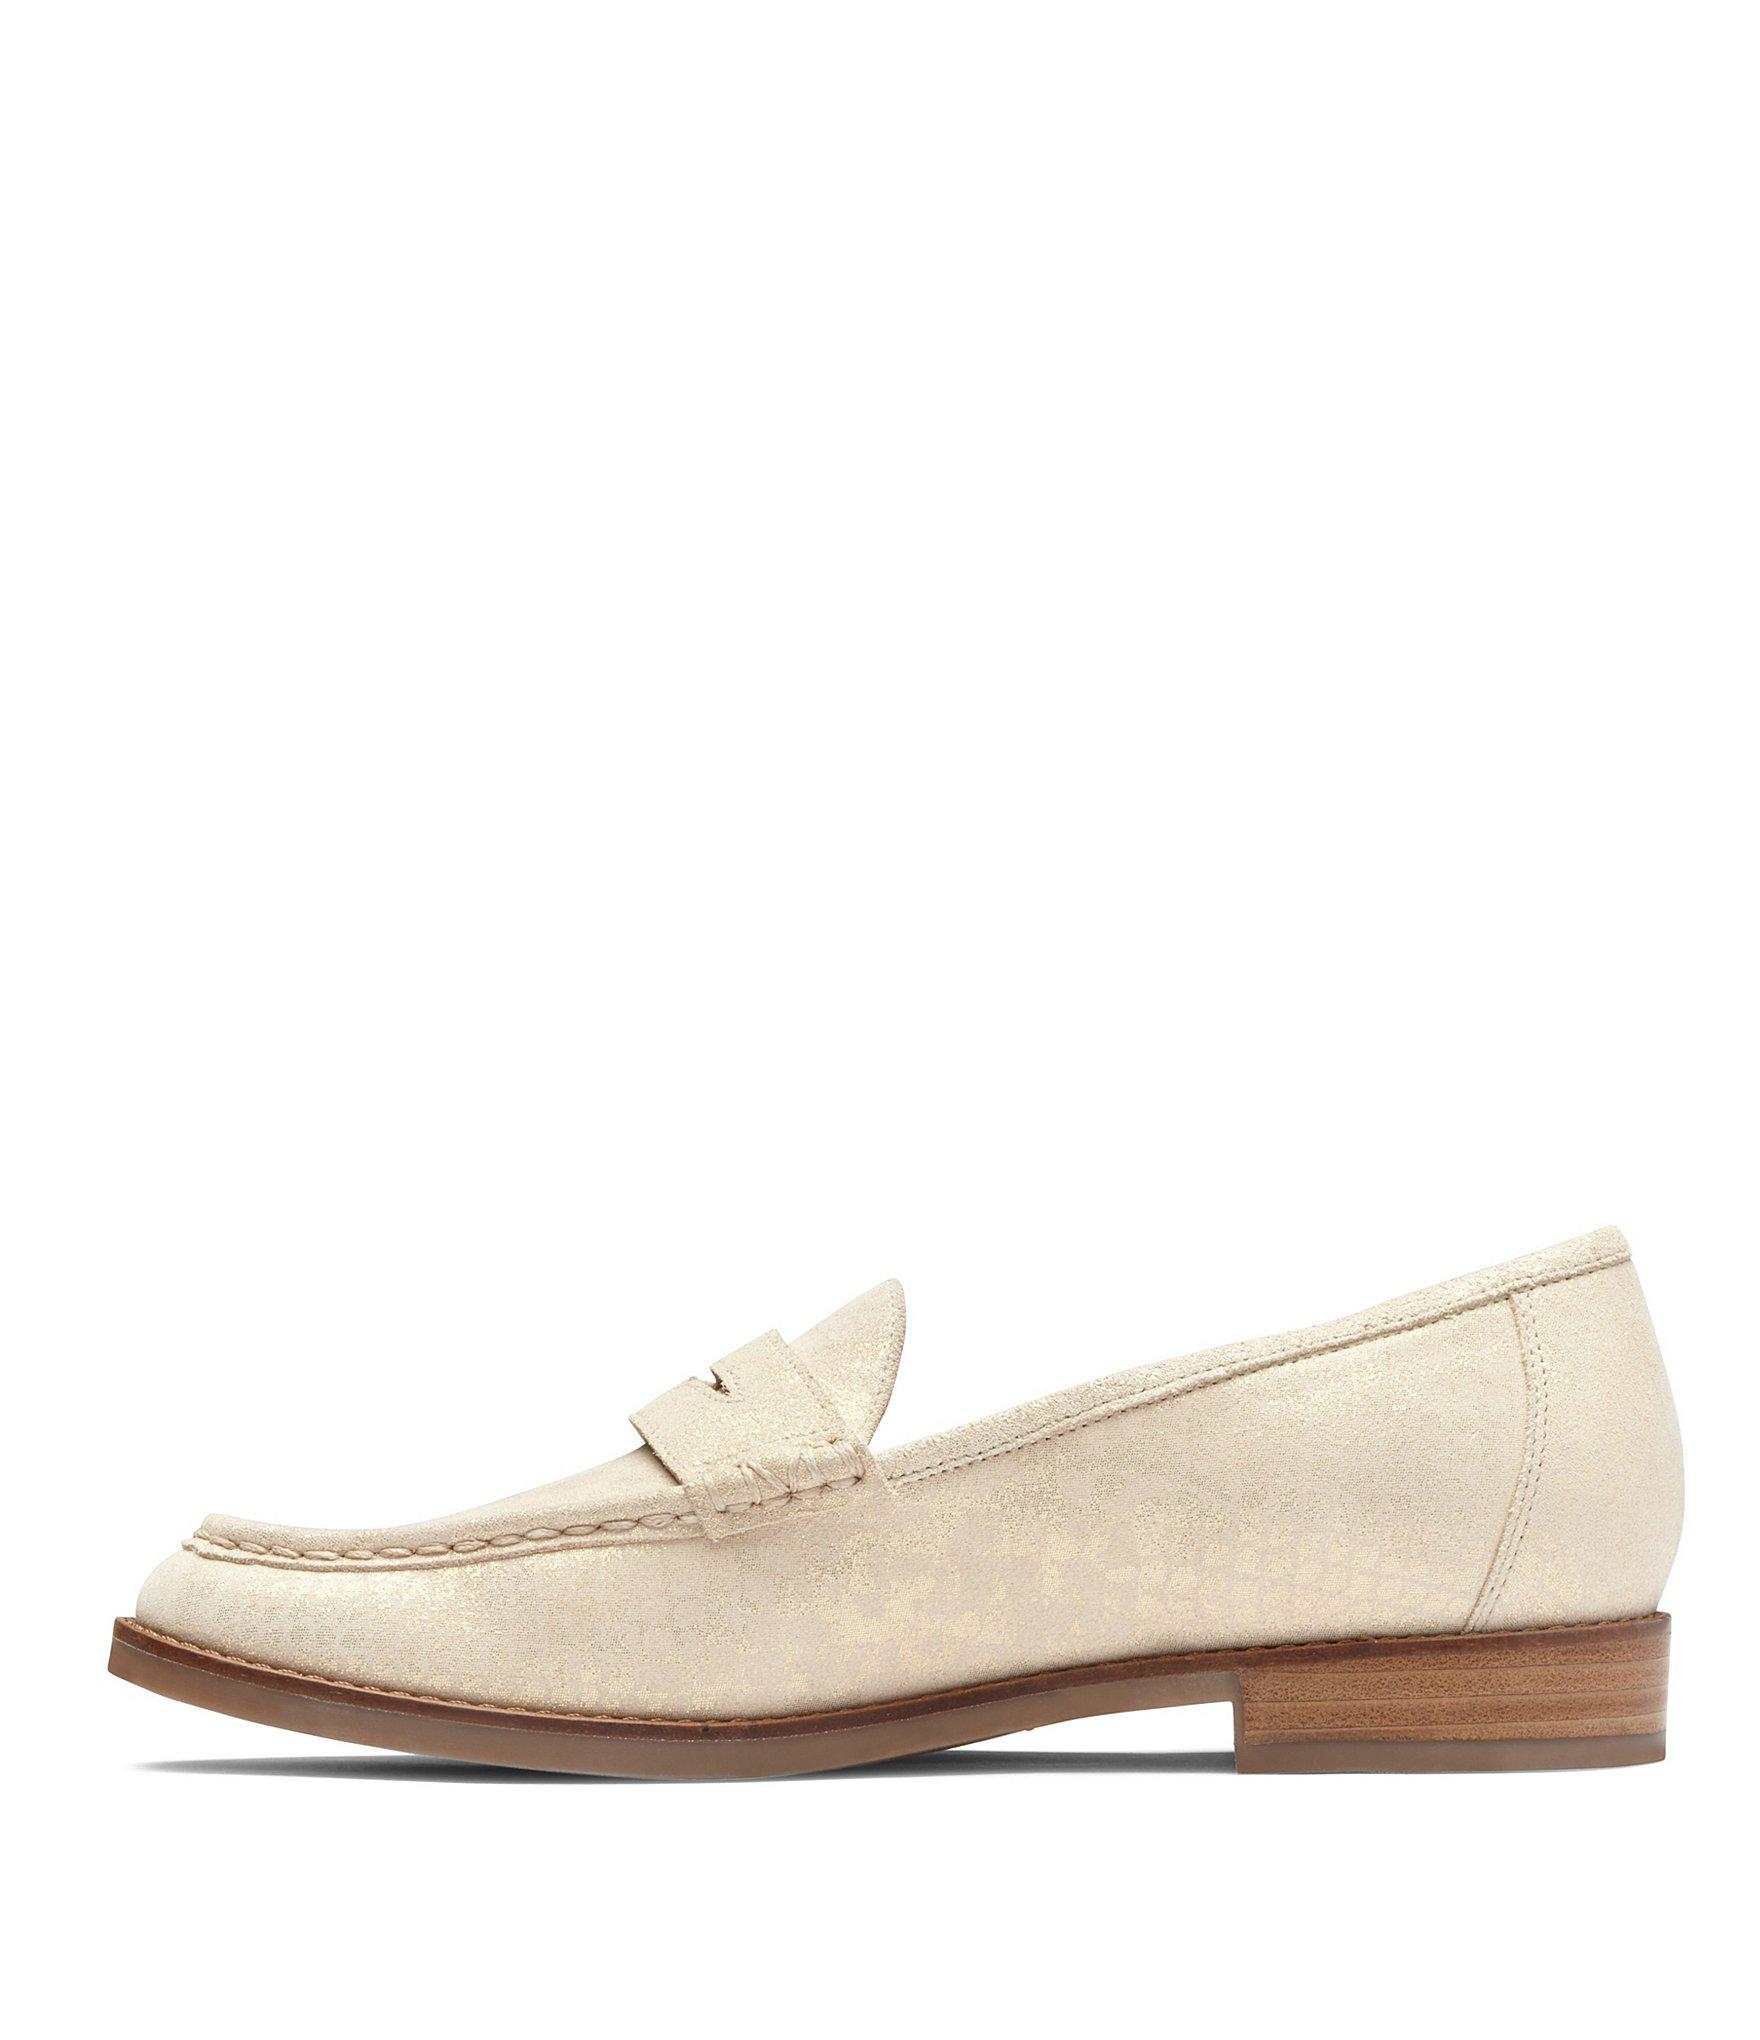 e0b595b9024 Vionic - Metallic Waverly Leather Penny Loafers - Lyst. View fullscreen